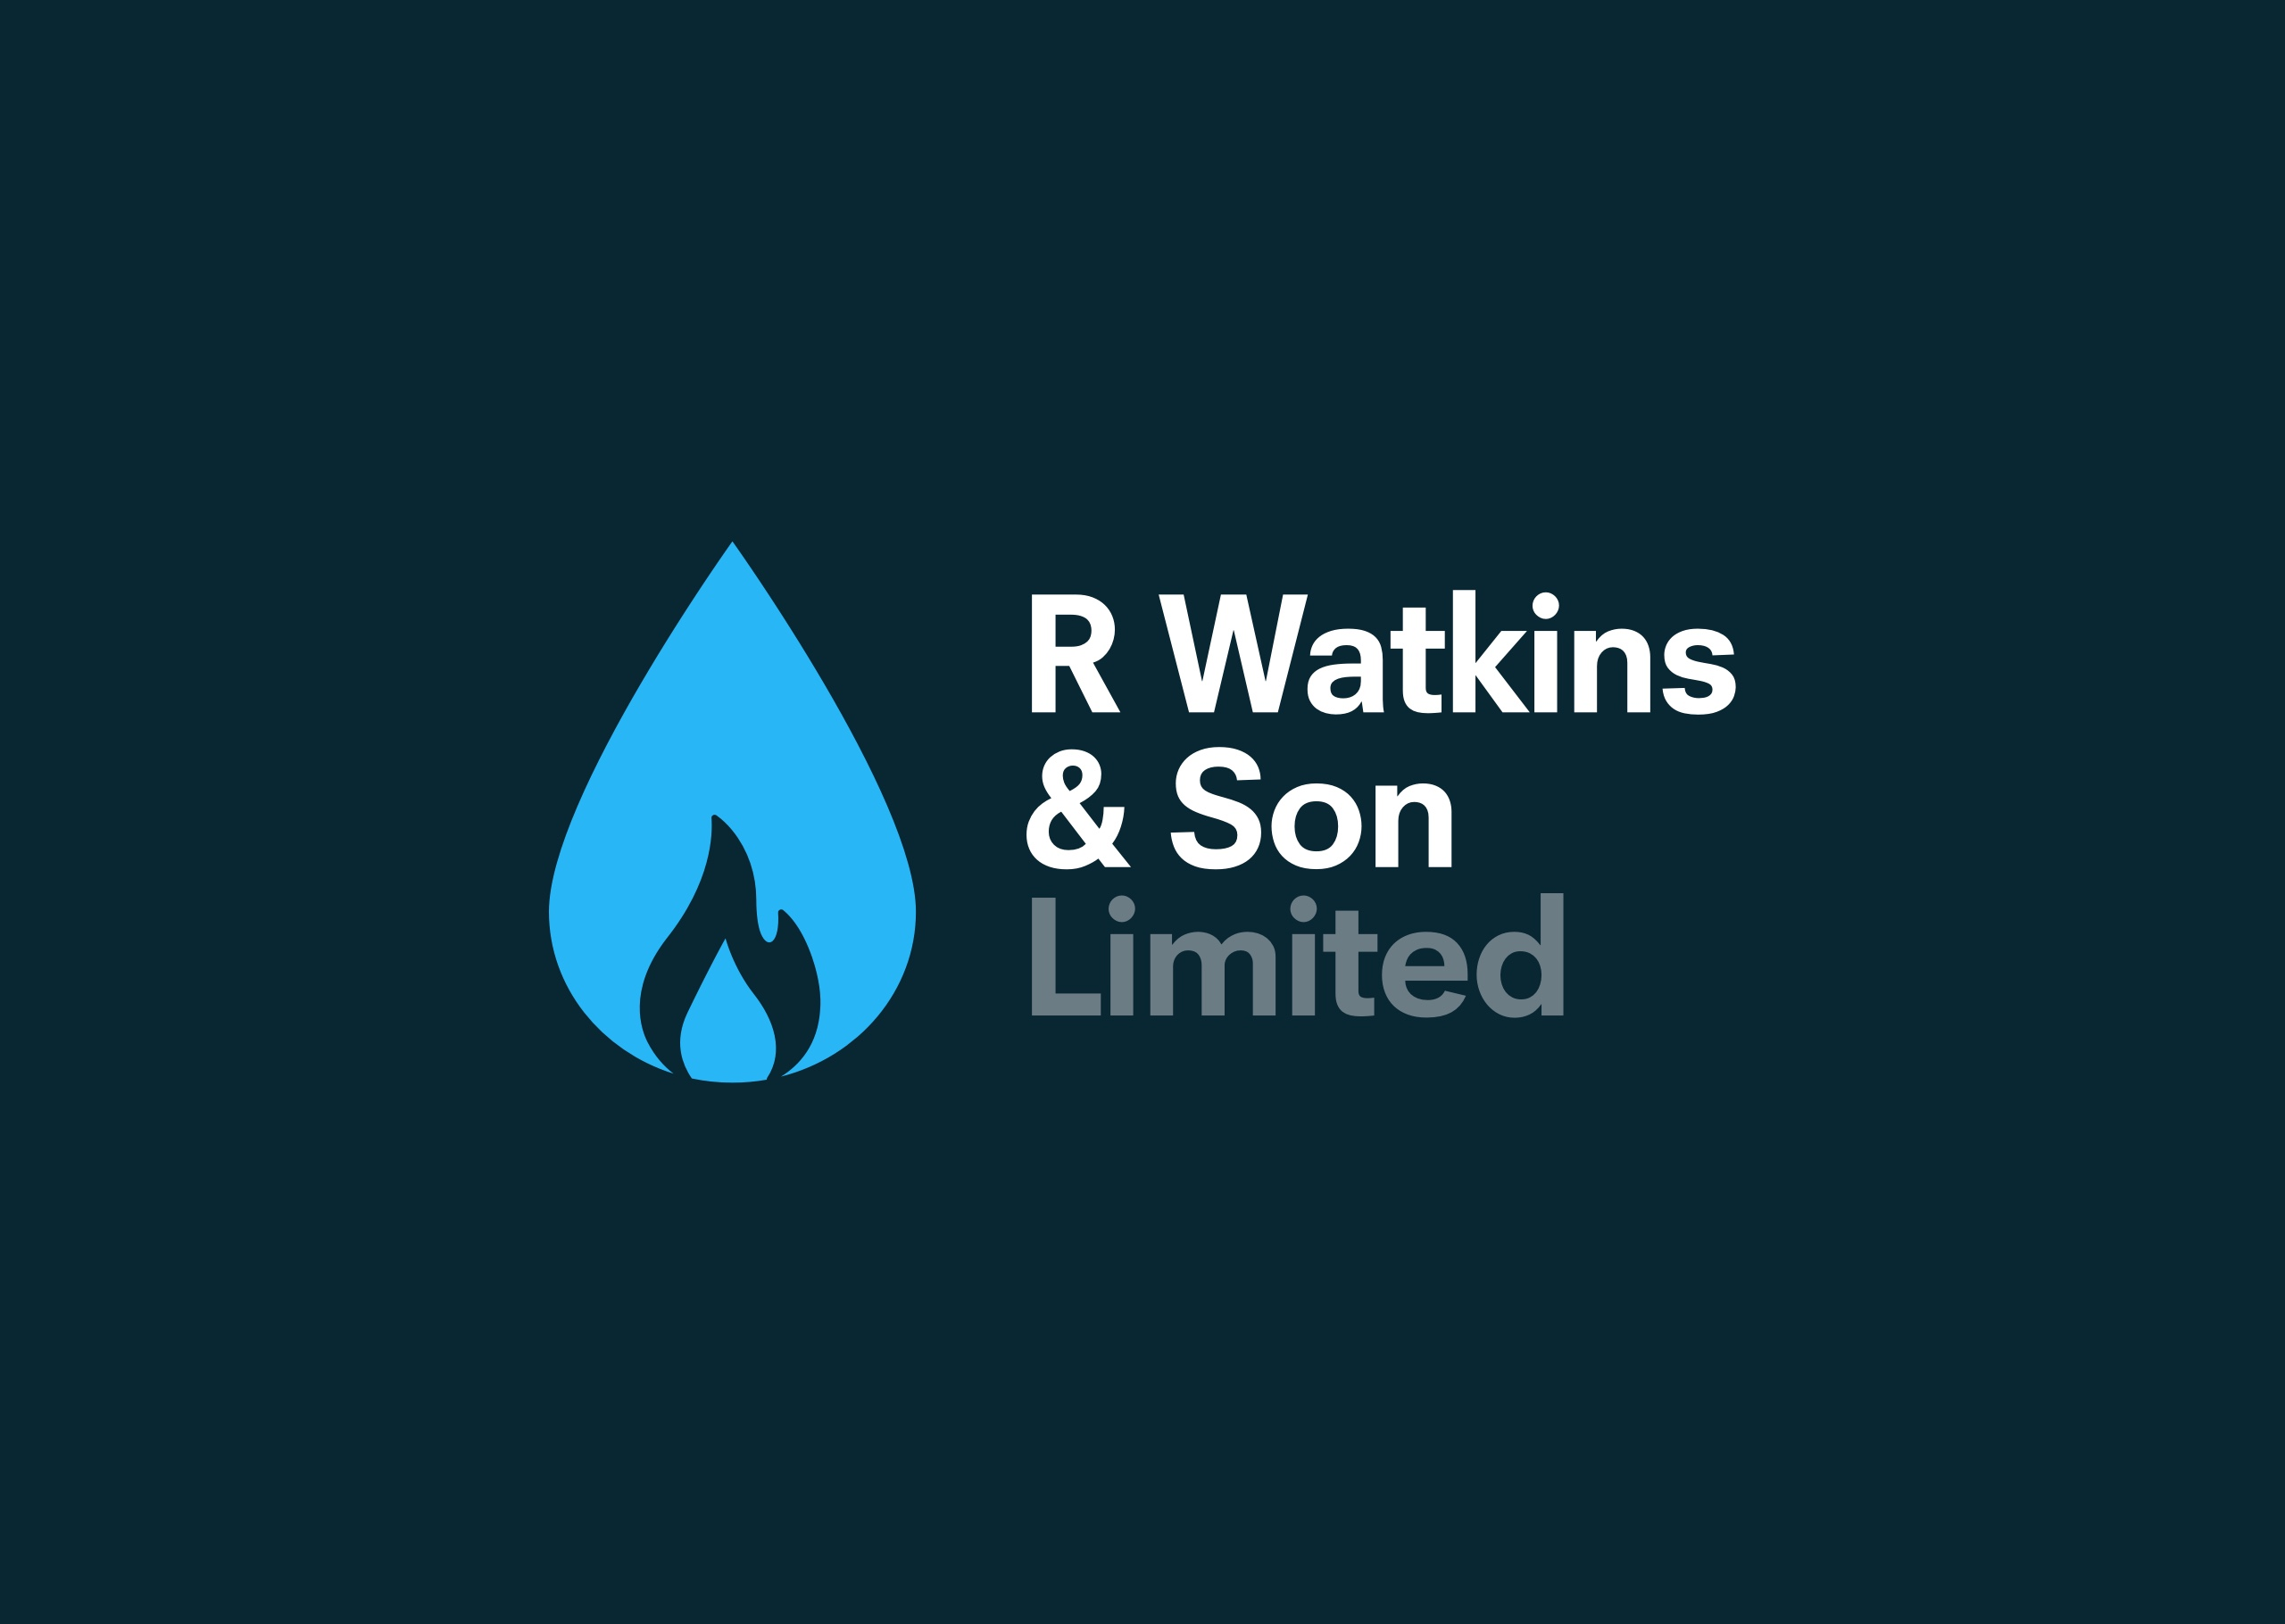 Logo design for established plumbing and heating business, R Watkins & Son Limited